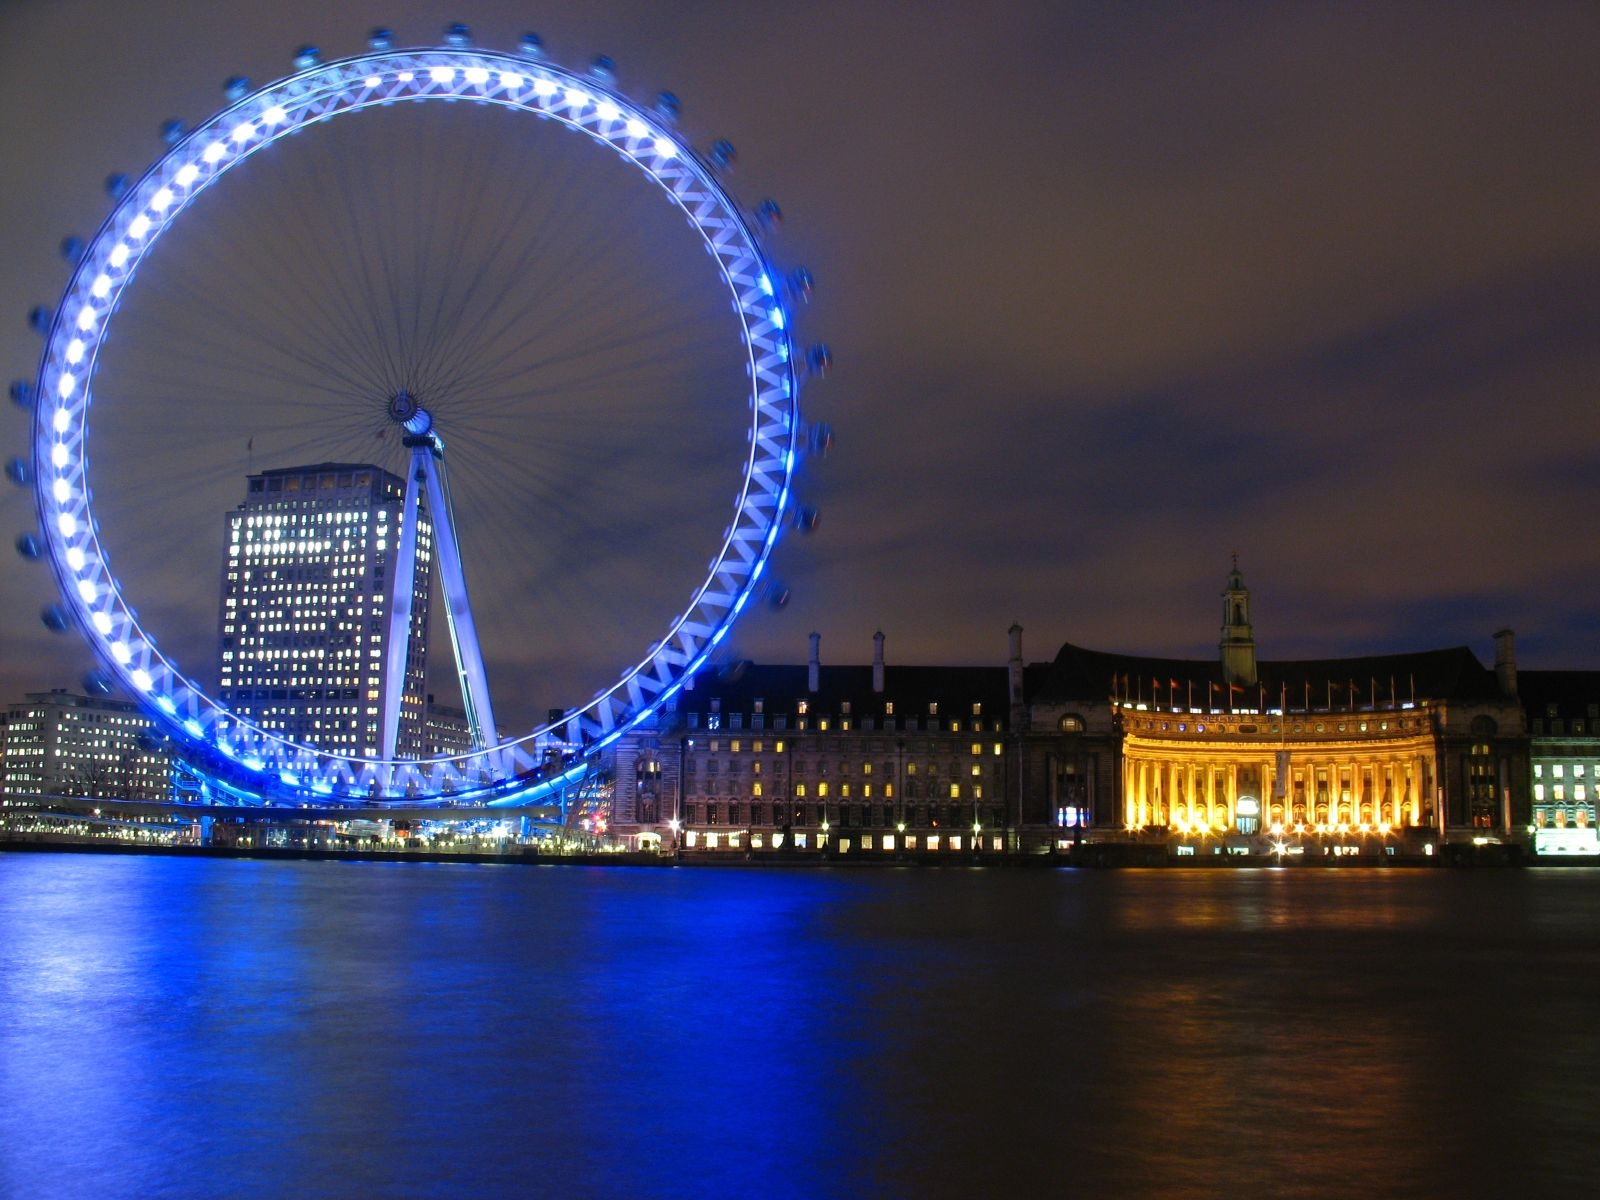 on August 20 2015 By Stephen Comments Off on London Eye HD Wallpapers 1600x1200